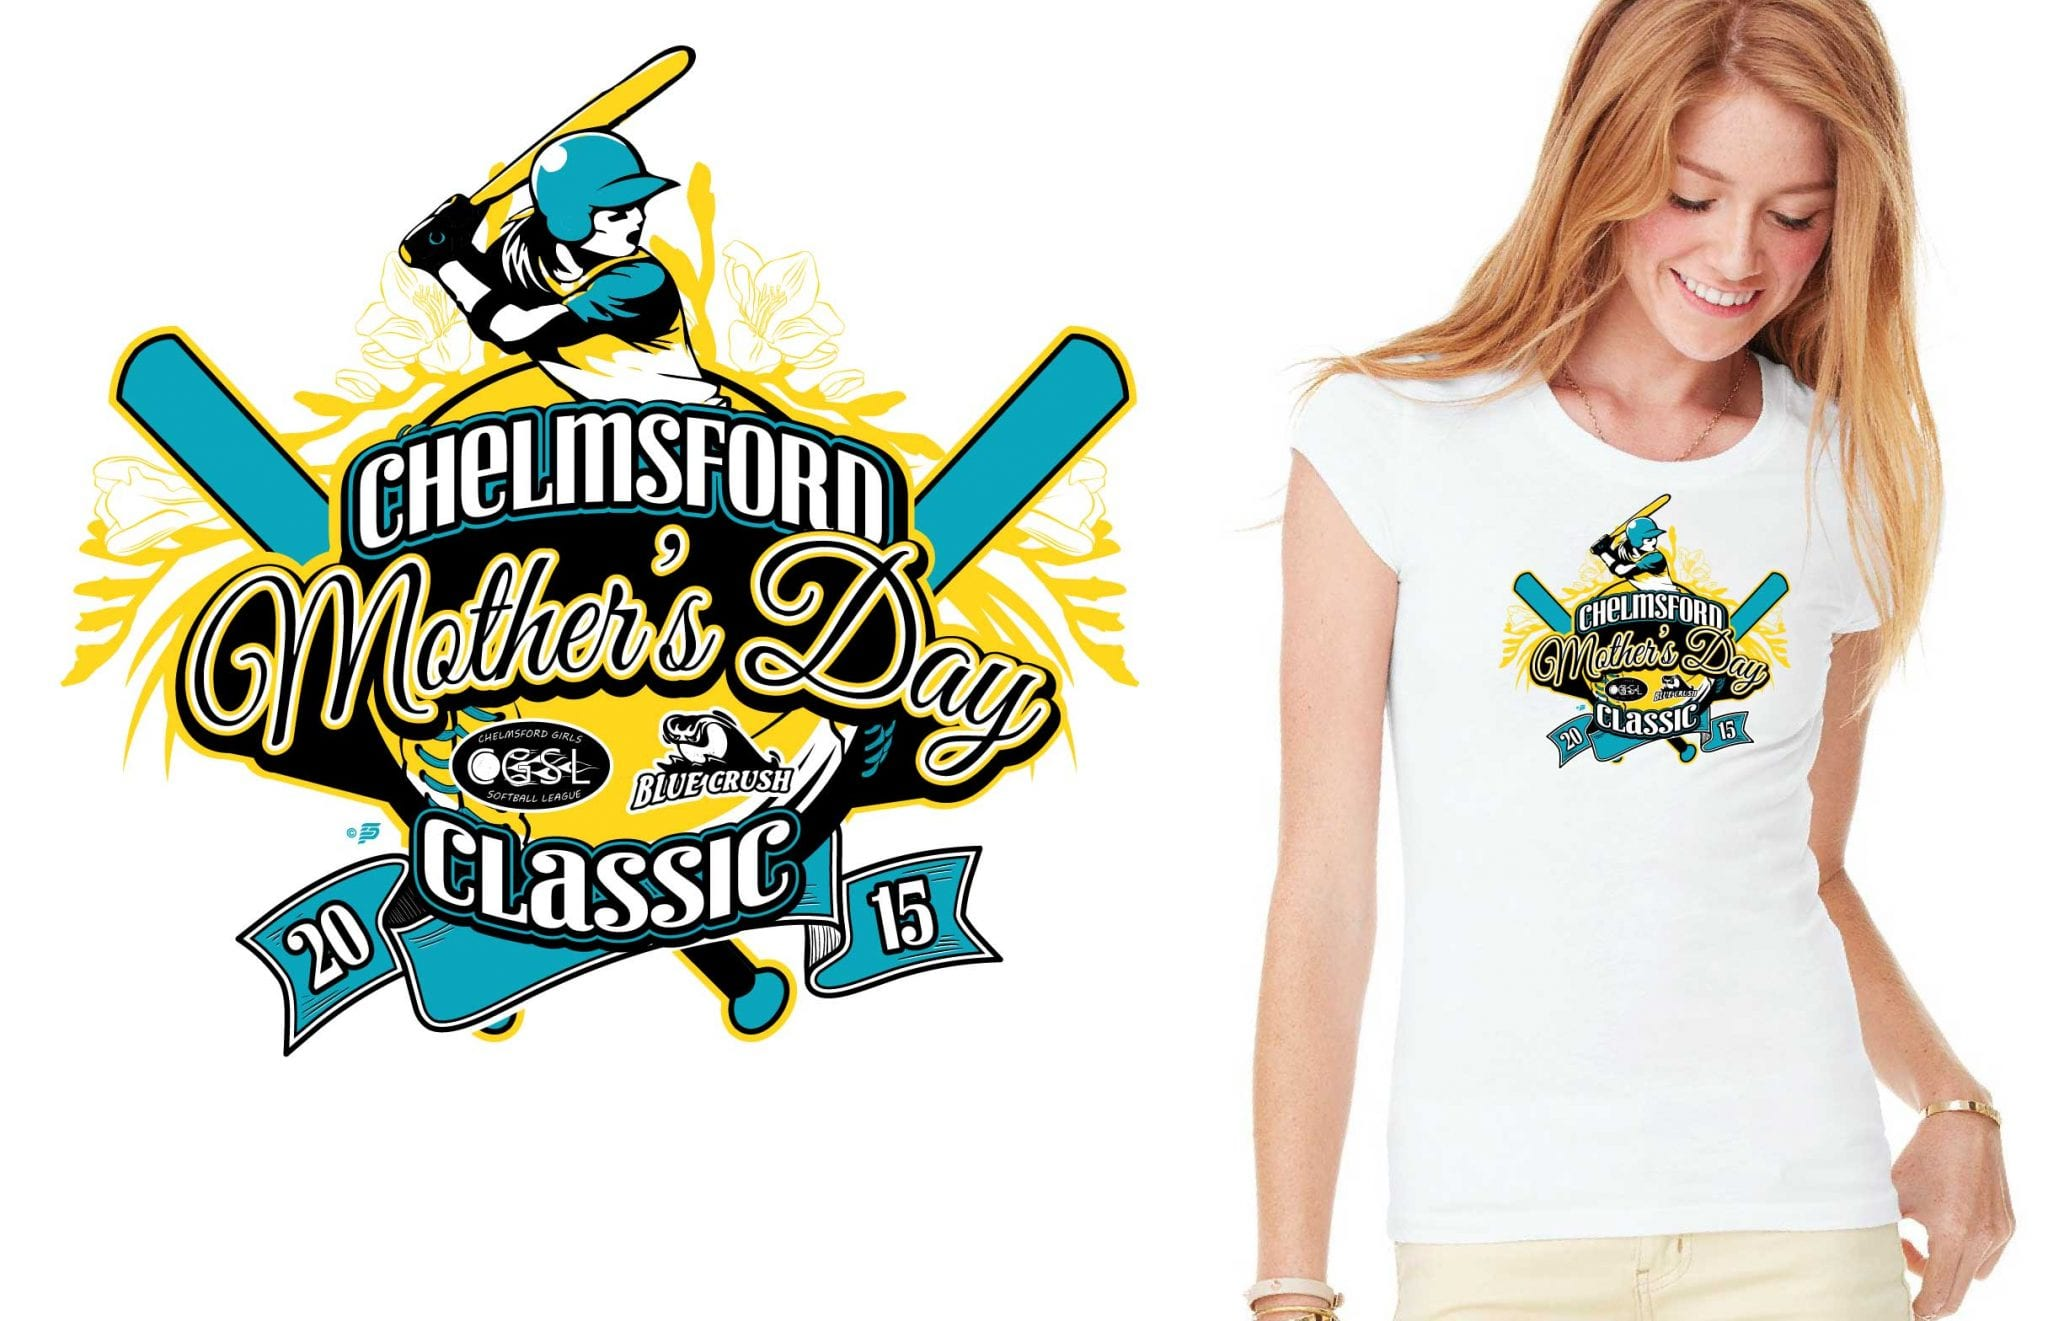 2015 Chelmsford Mother's Day Classic PRINT READY